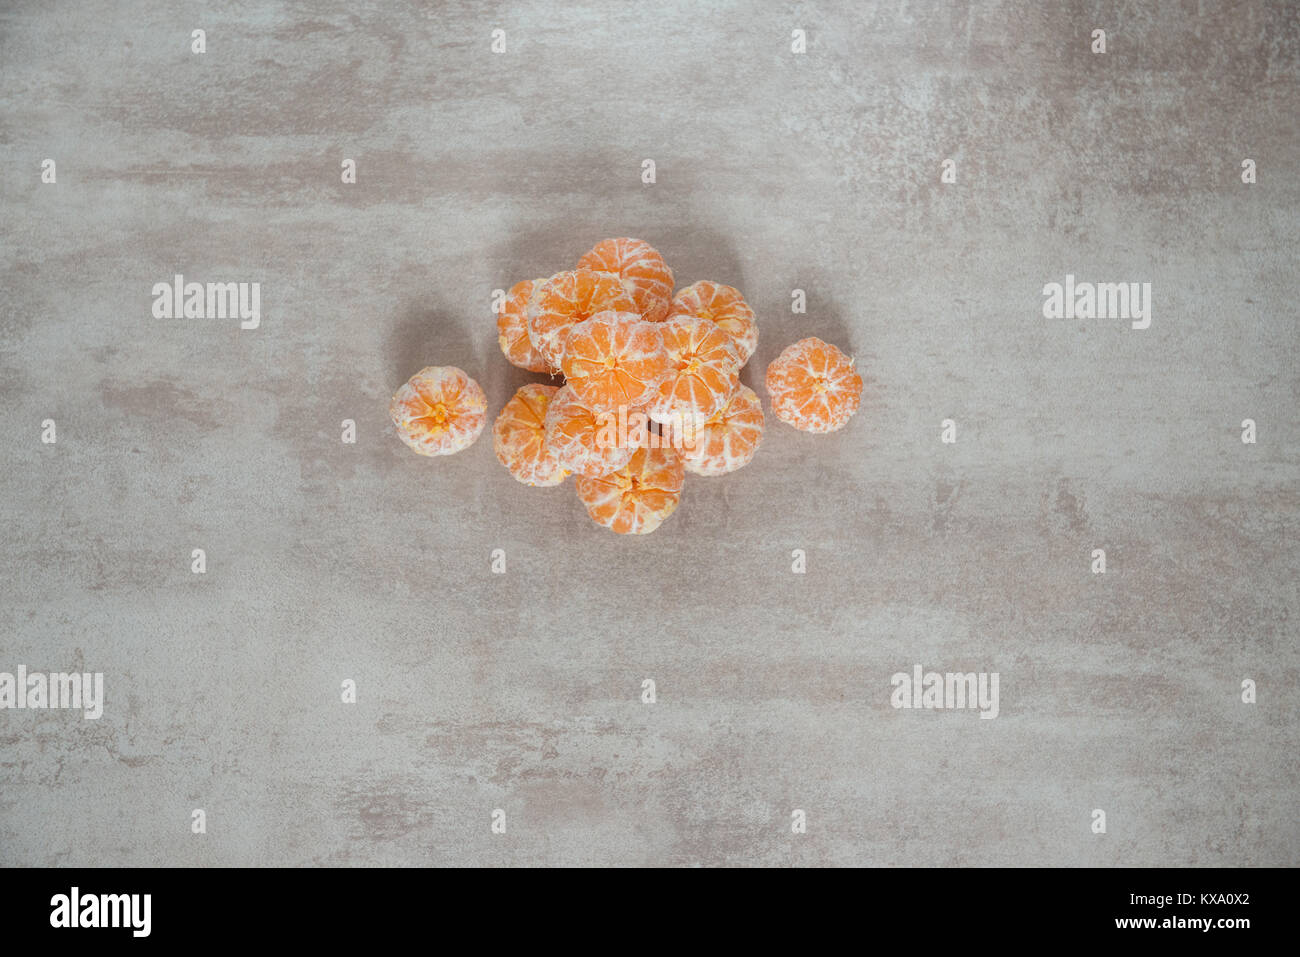 Orange Mandarines, Clementines, Tangerines or small oranges Stock Photo